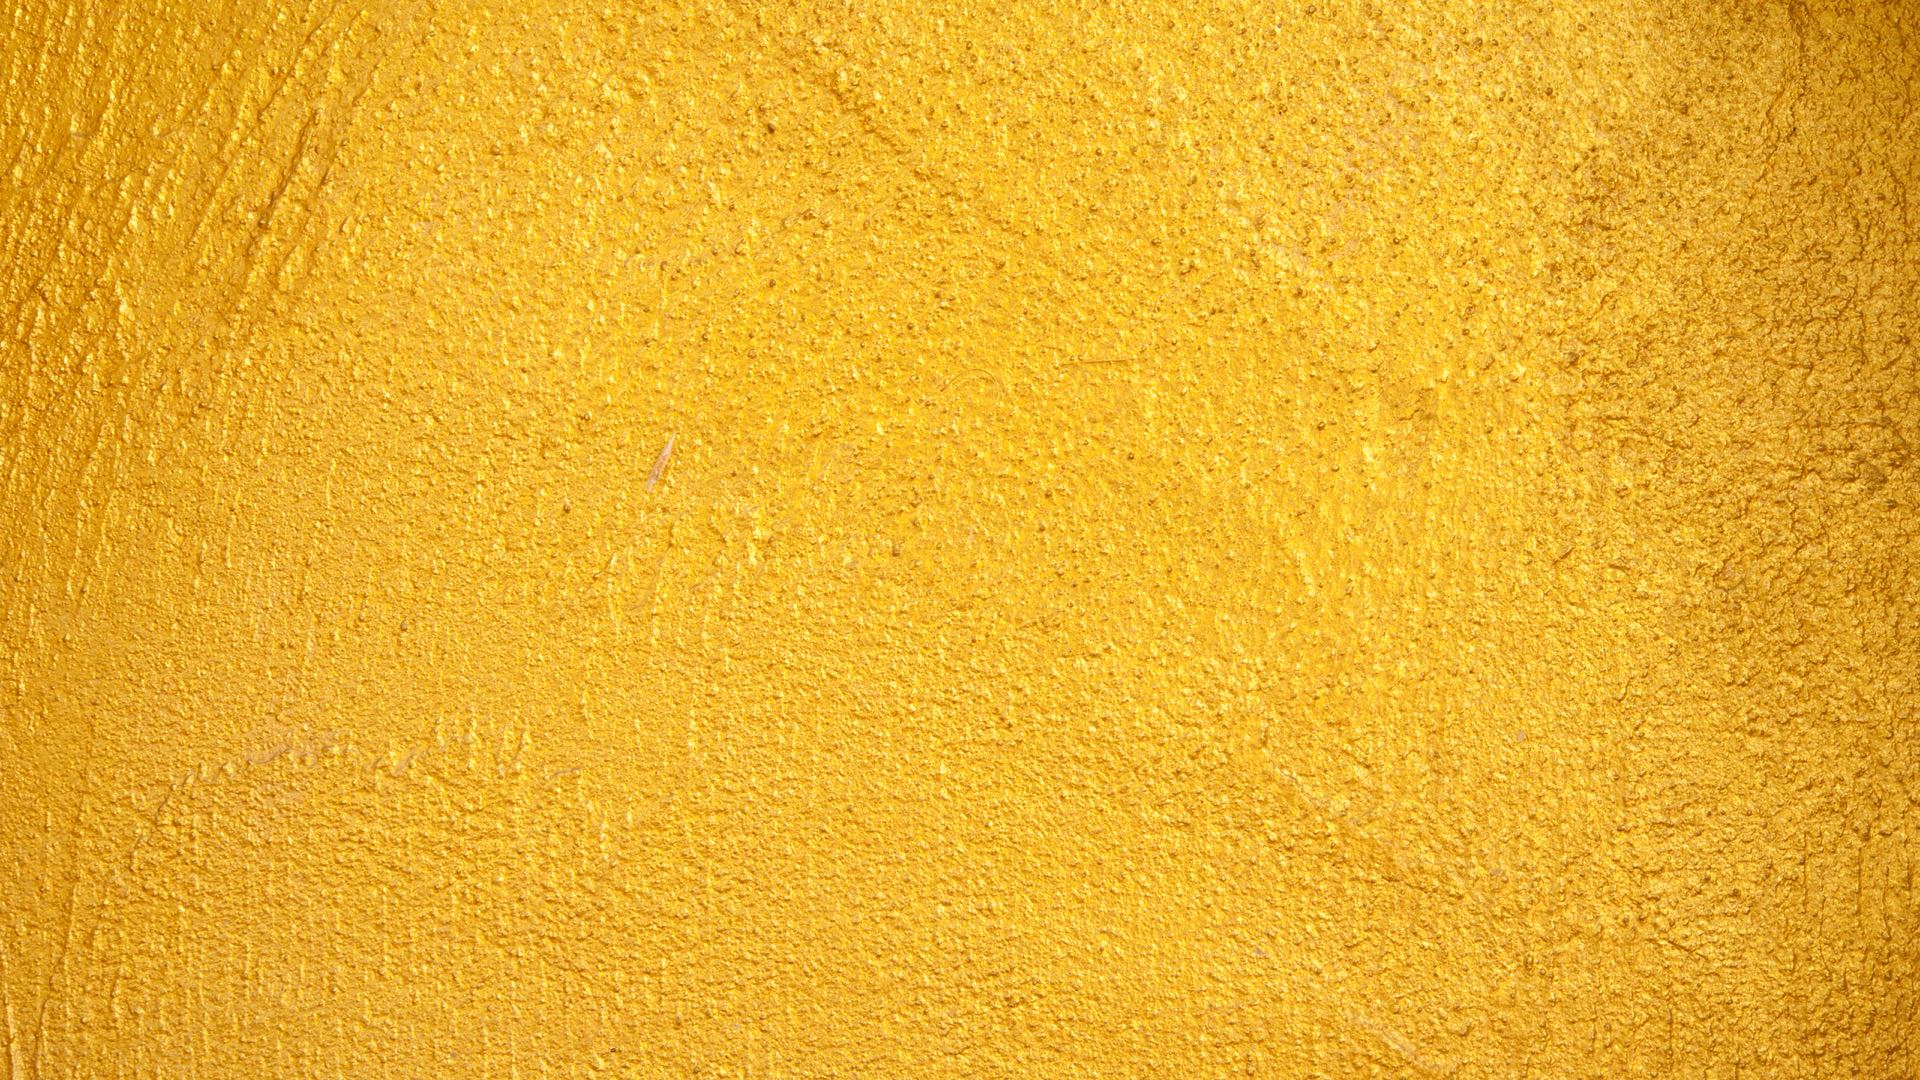 Yellow Wall Cool Wallpaper Sc Desktop